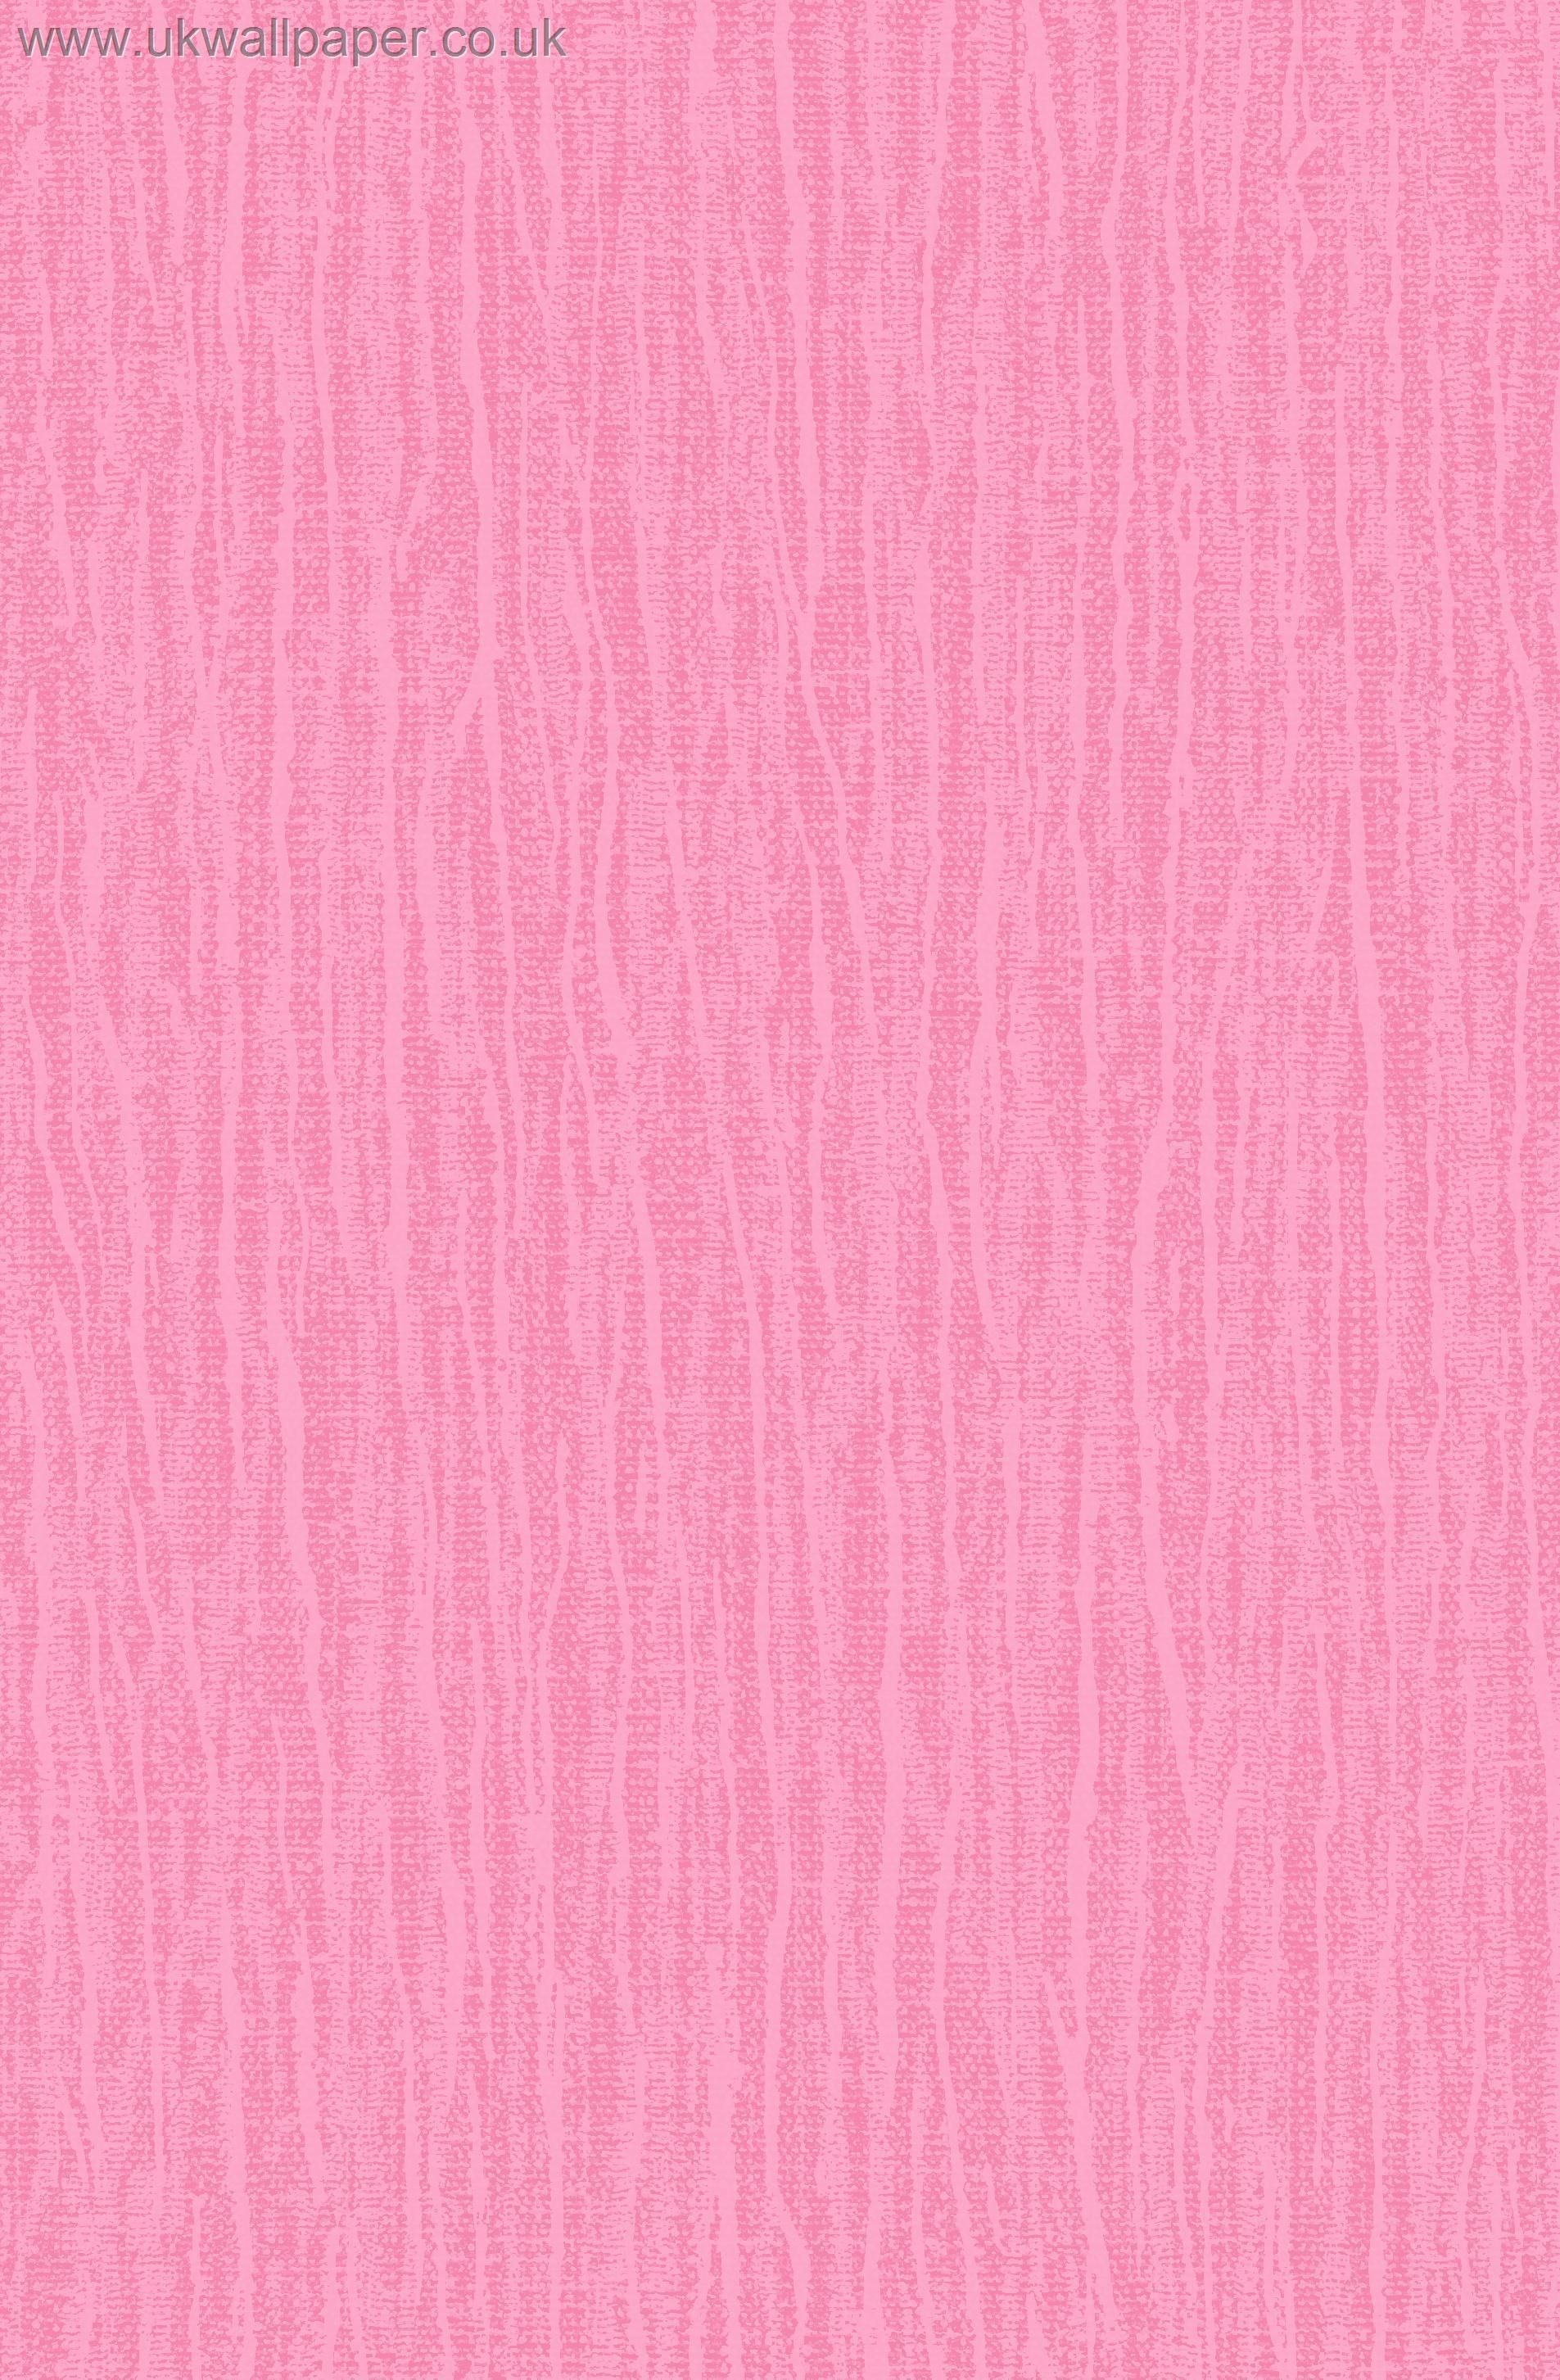 57 Plain Pink Wallpapers on WallpaperPlay 1905x2906